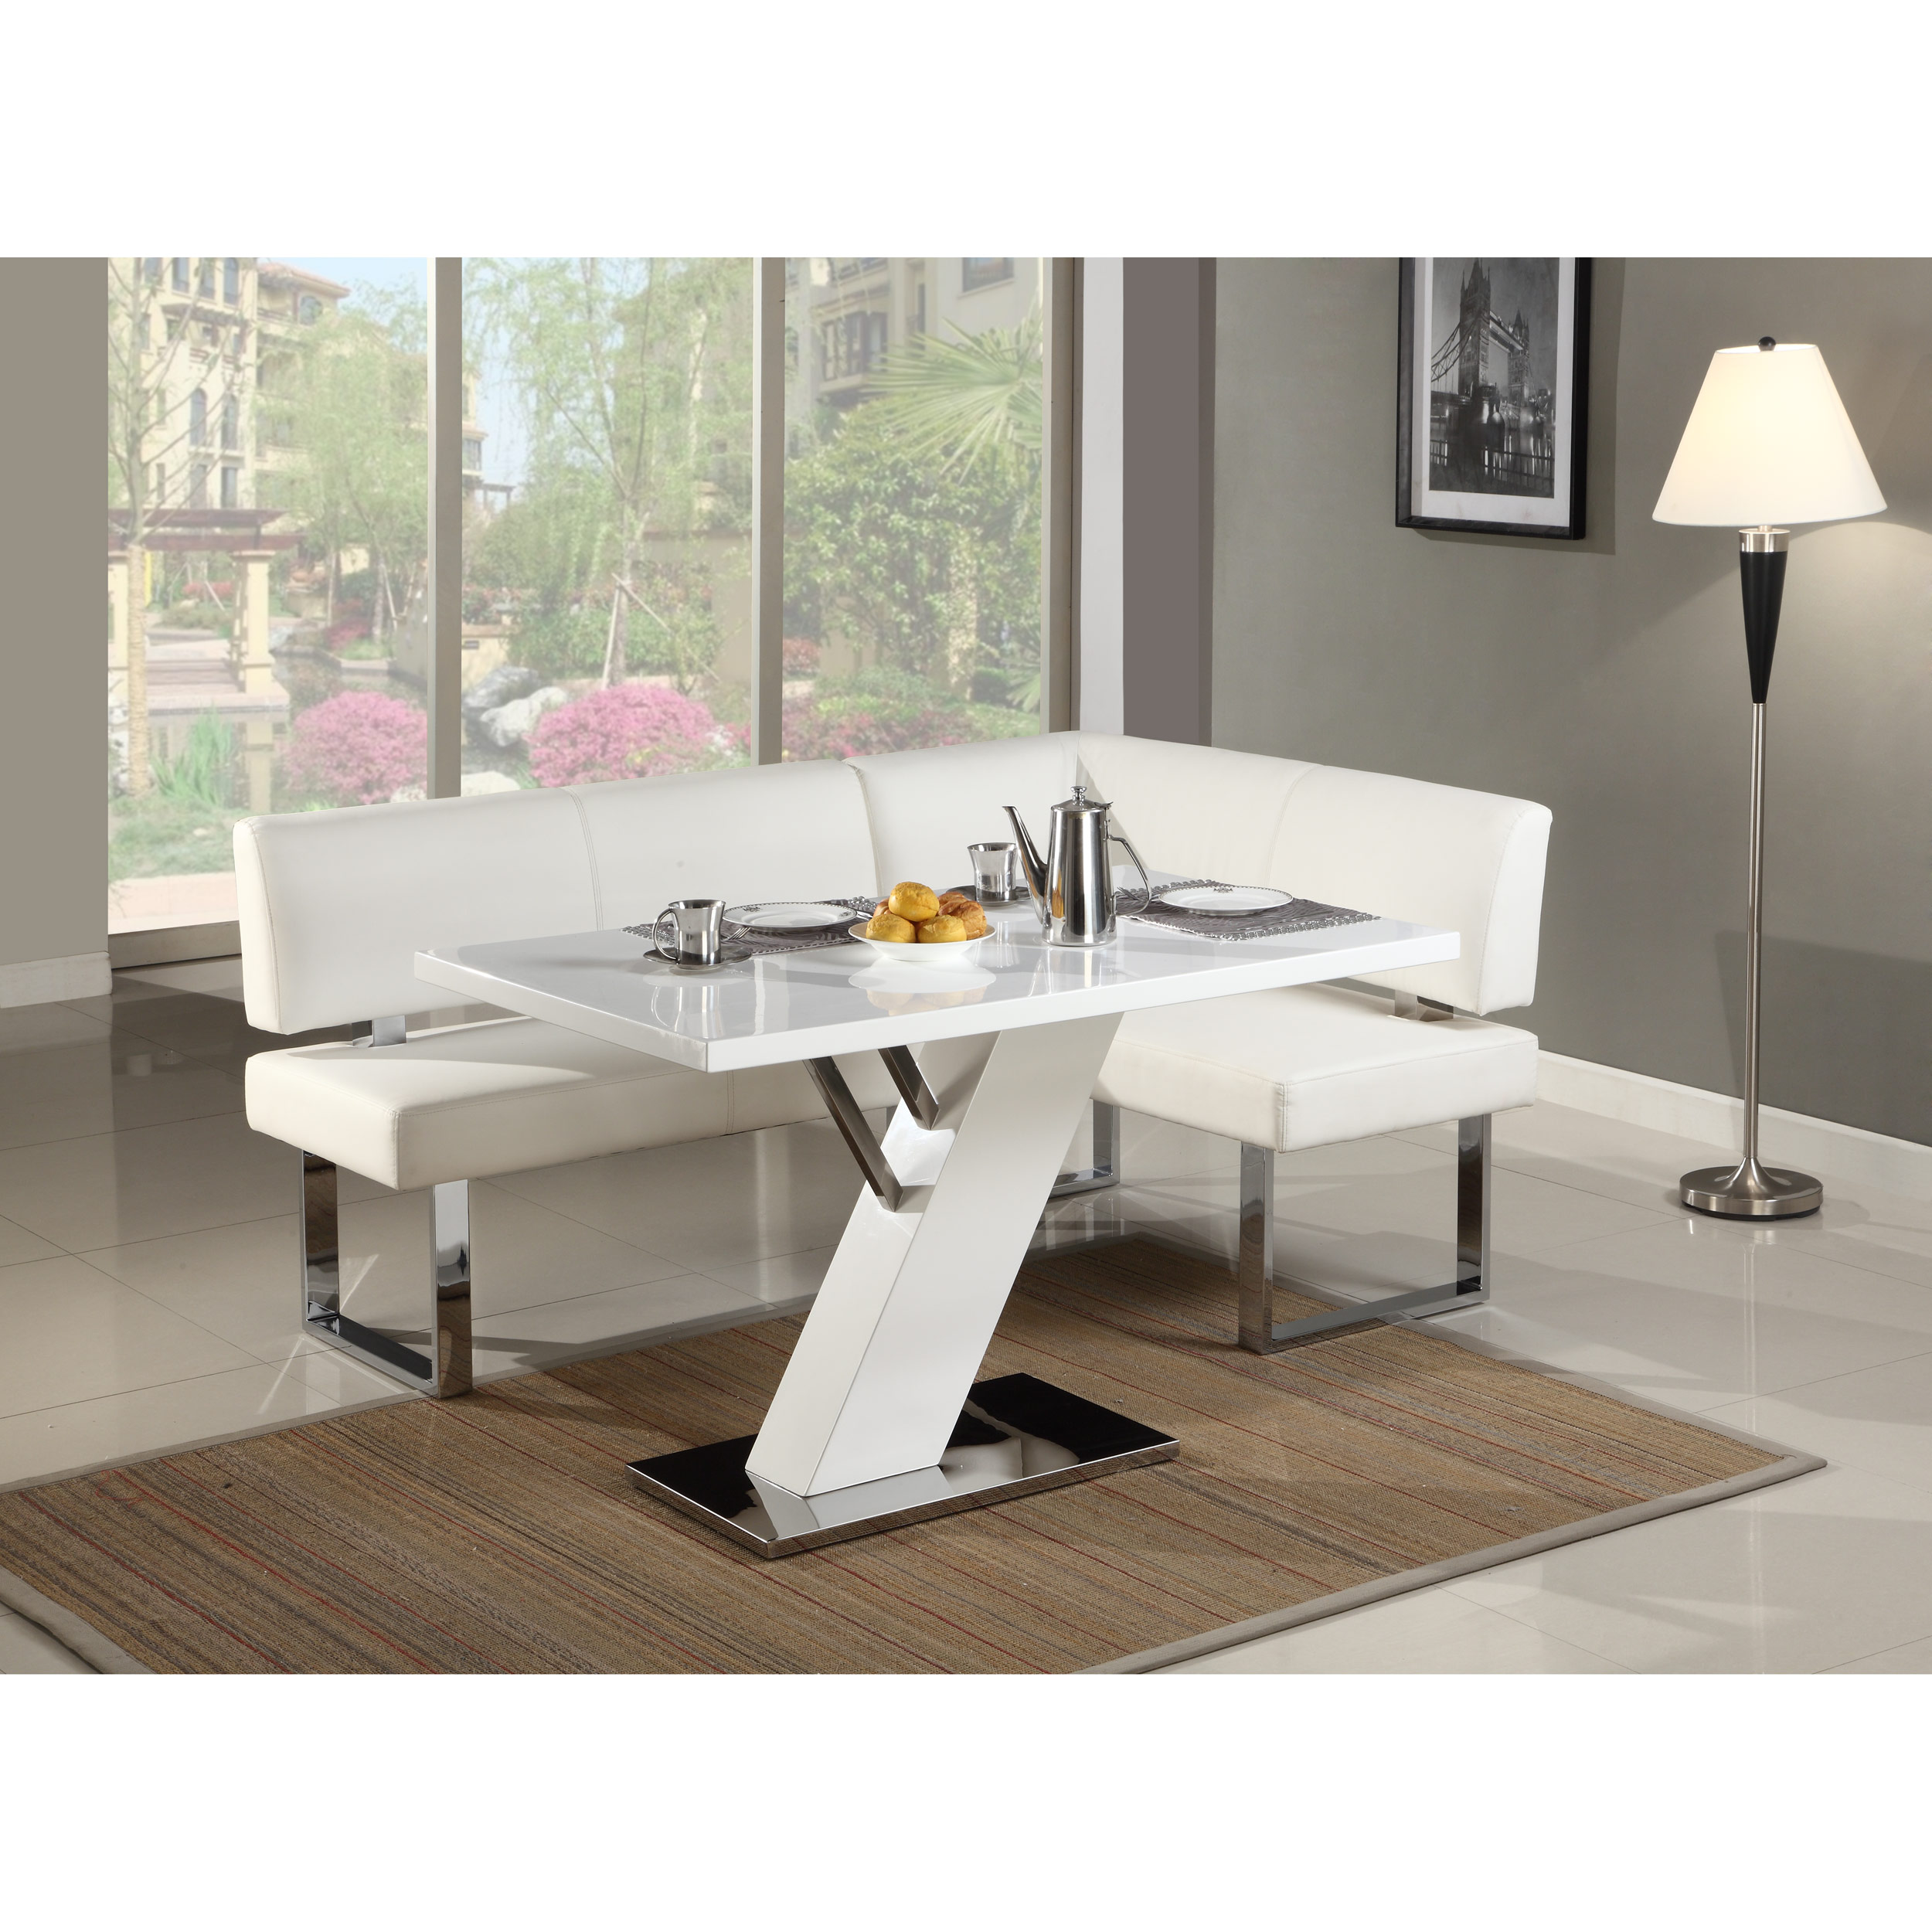 Contemporary Galleries - Nook Corner Bench Seating White